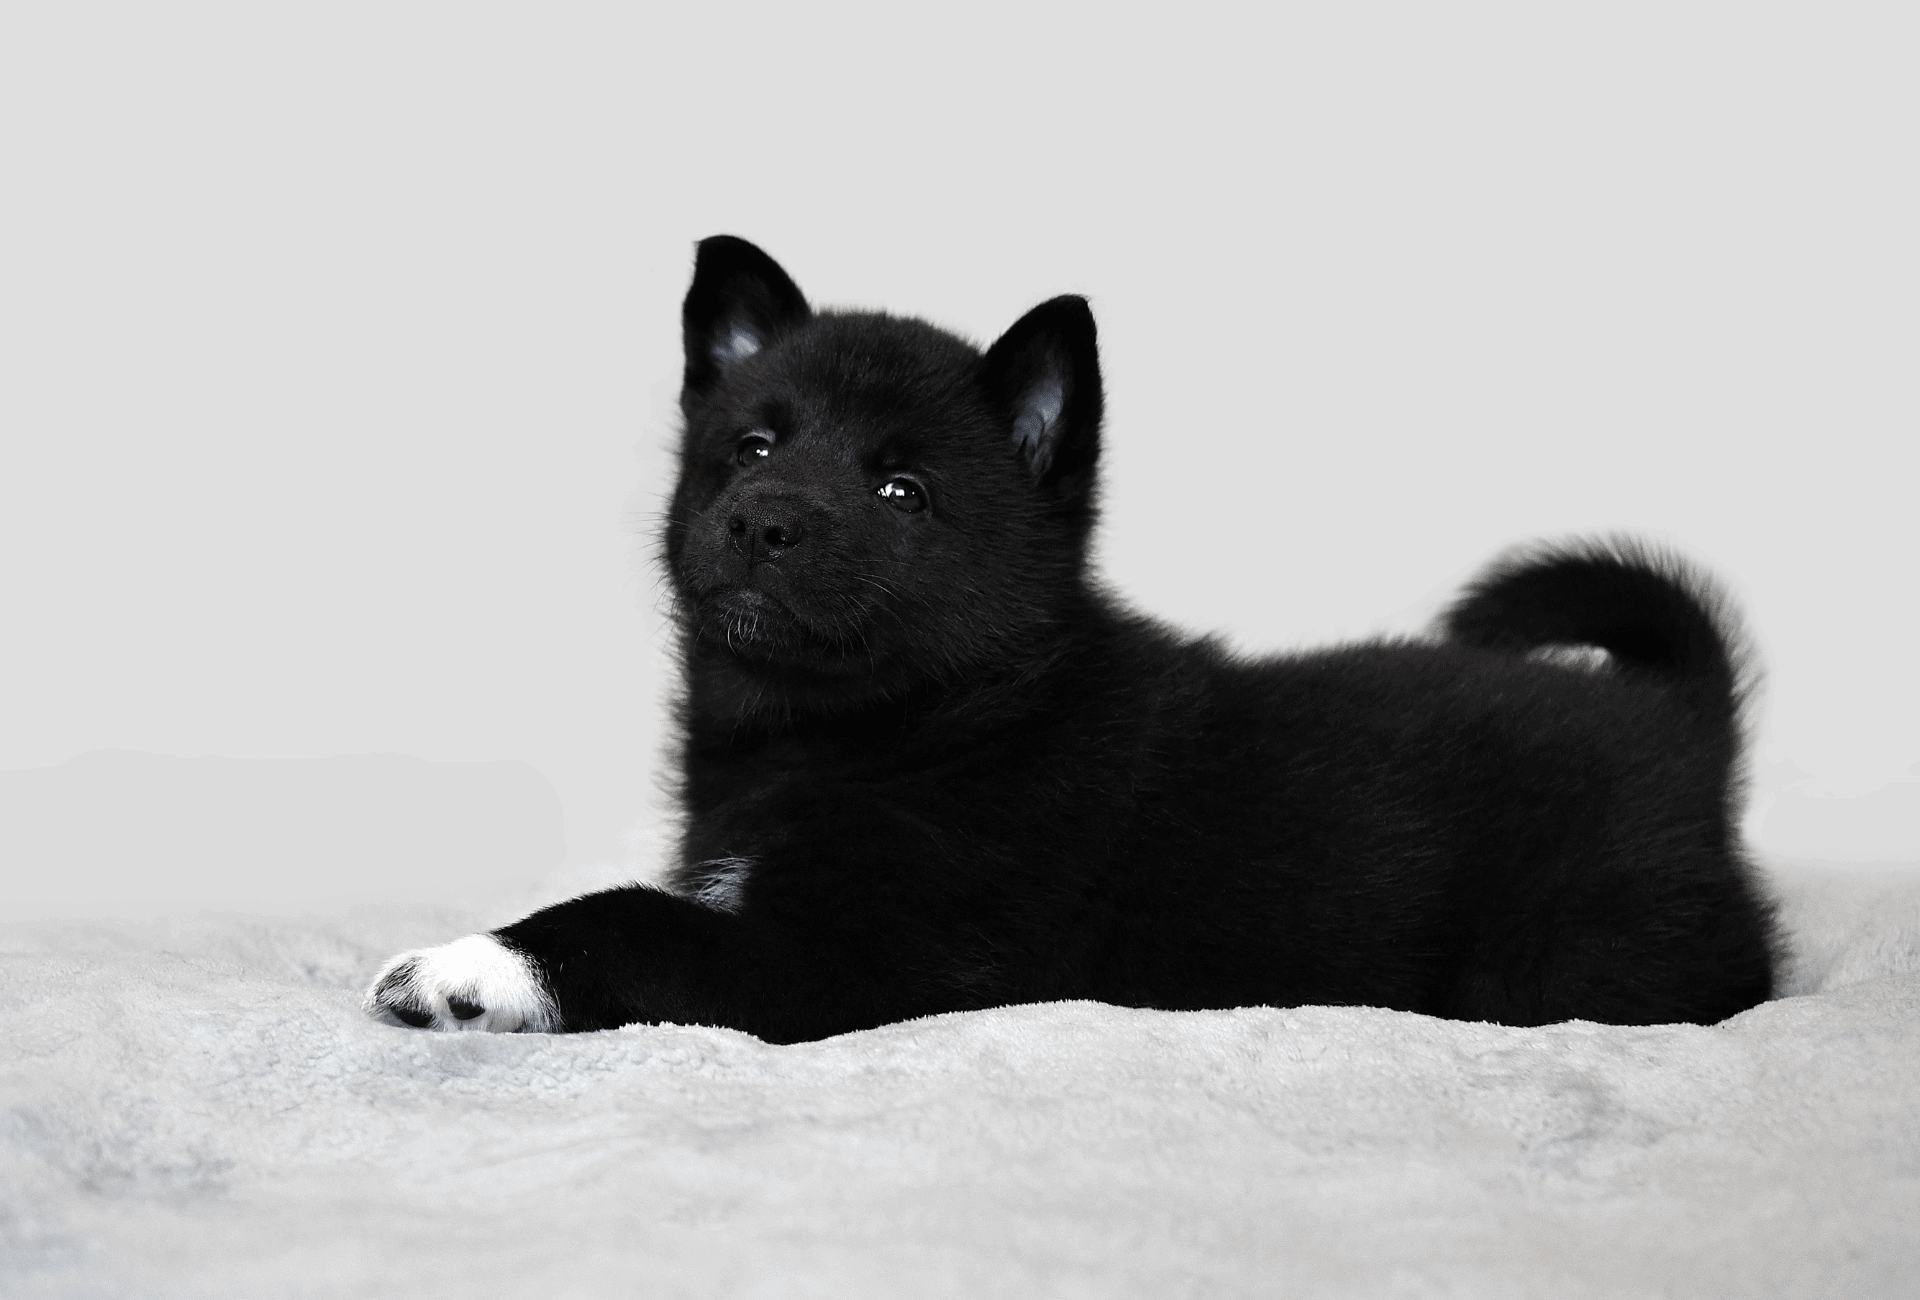 All black Husky puppy with white paws.